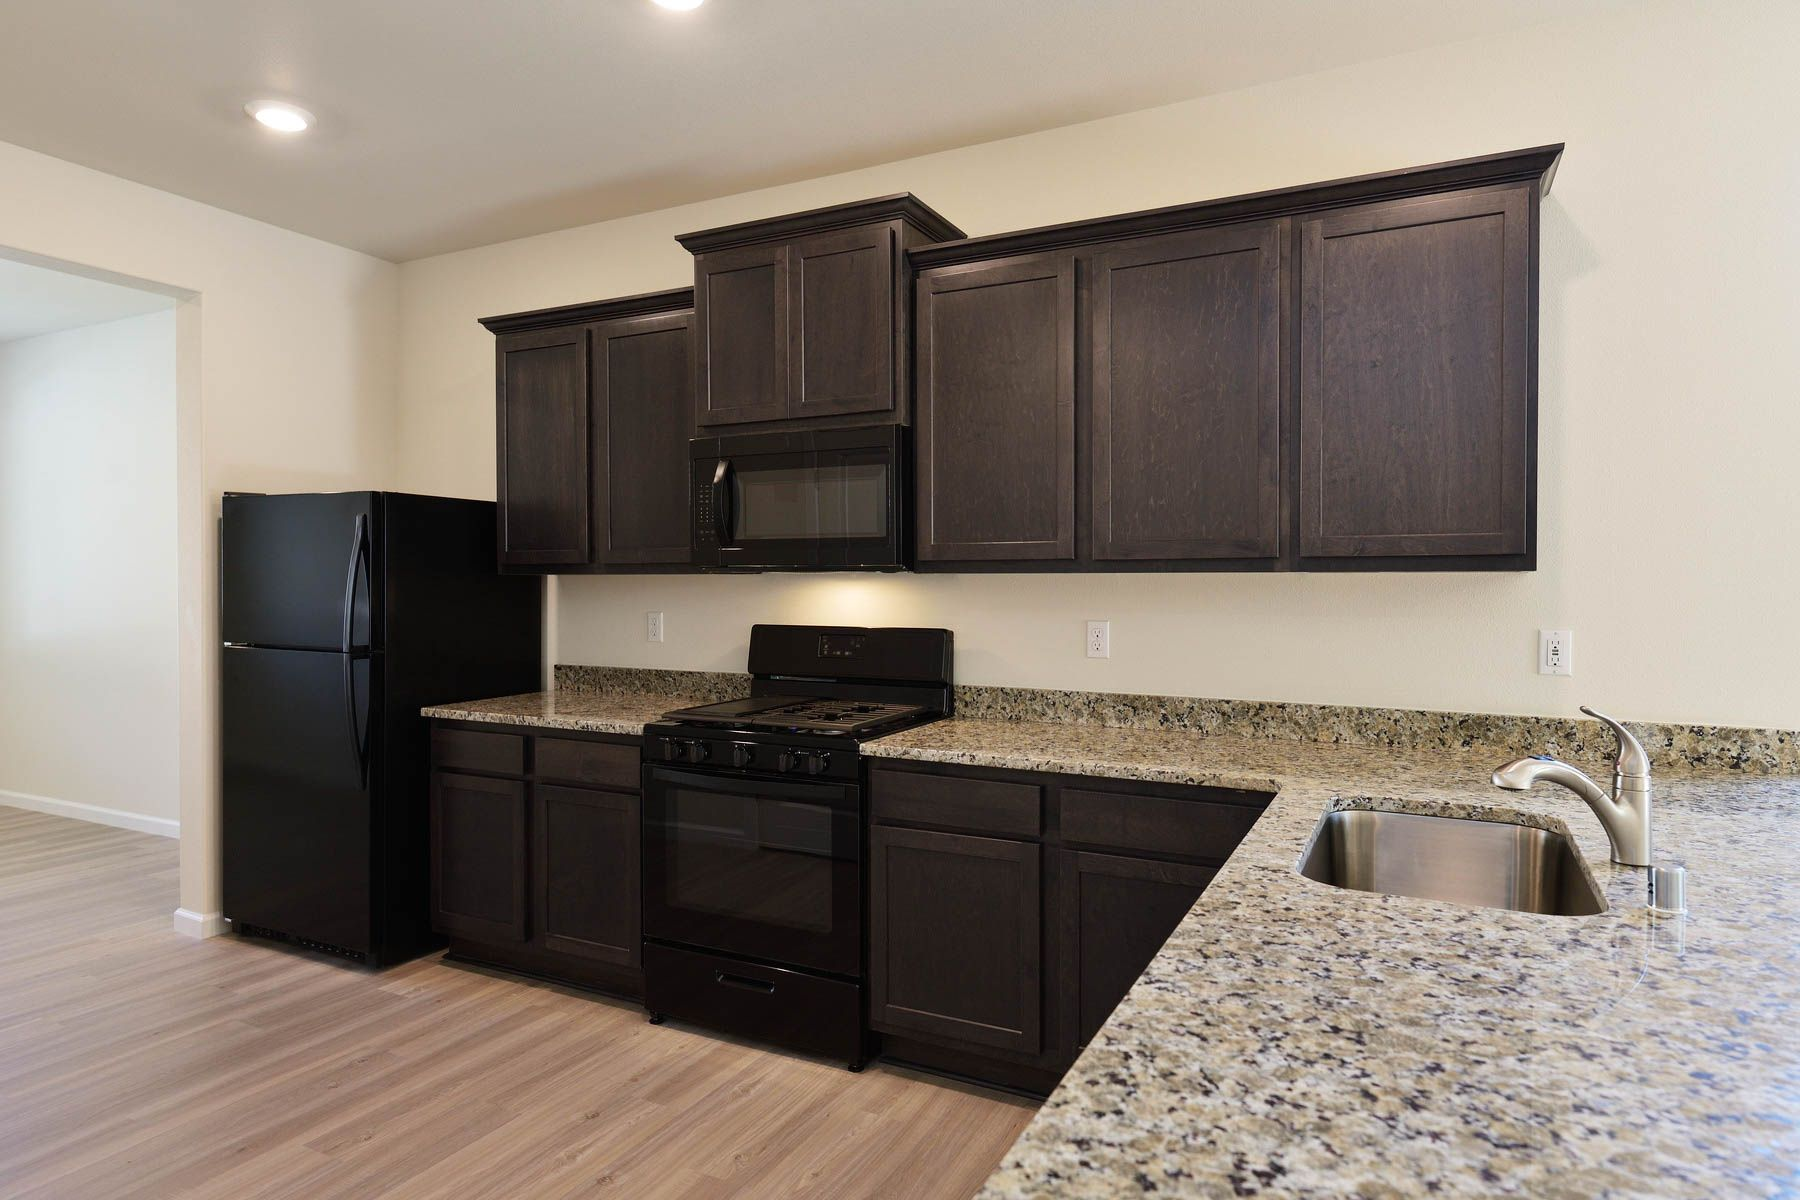 Kitchen featured in the Columbia By LGI Homes in Seattle-Bellevue, WA